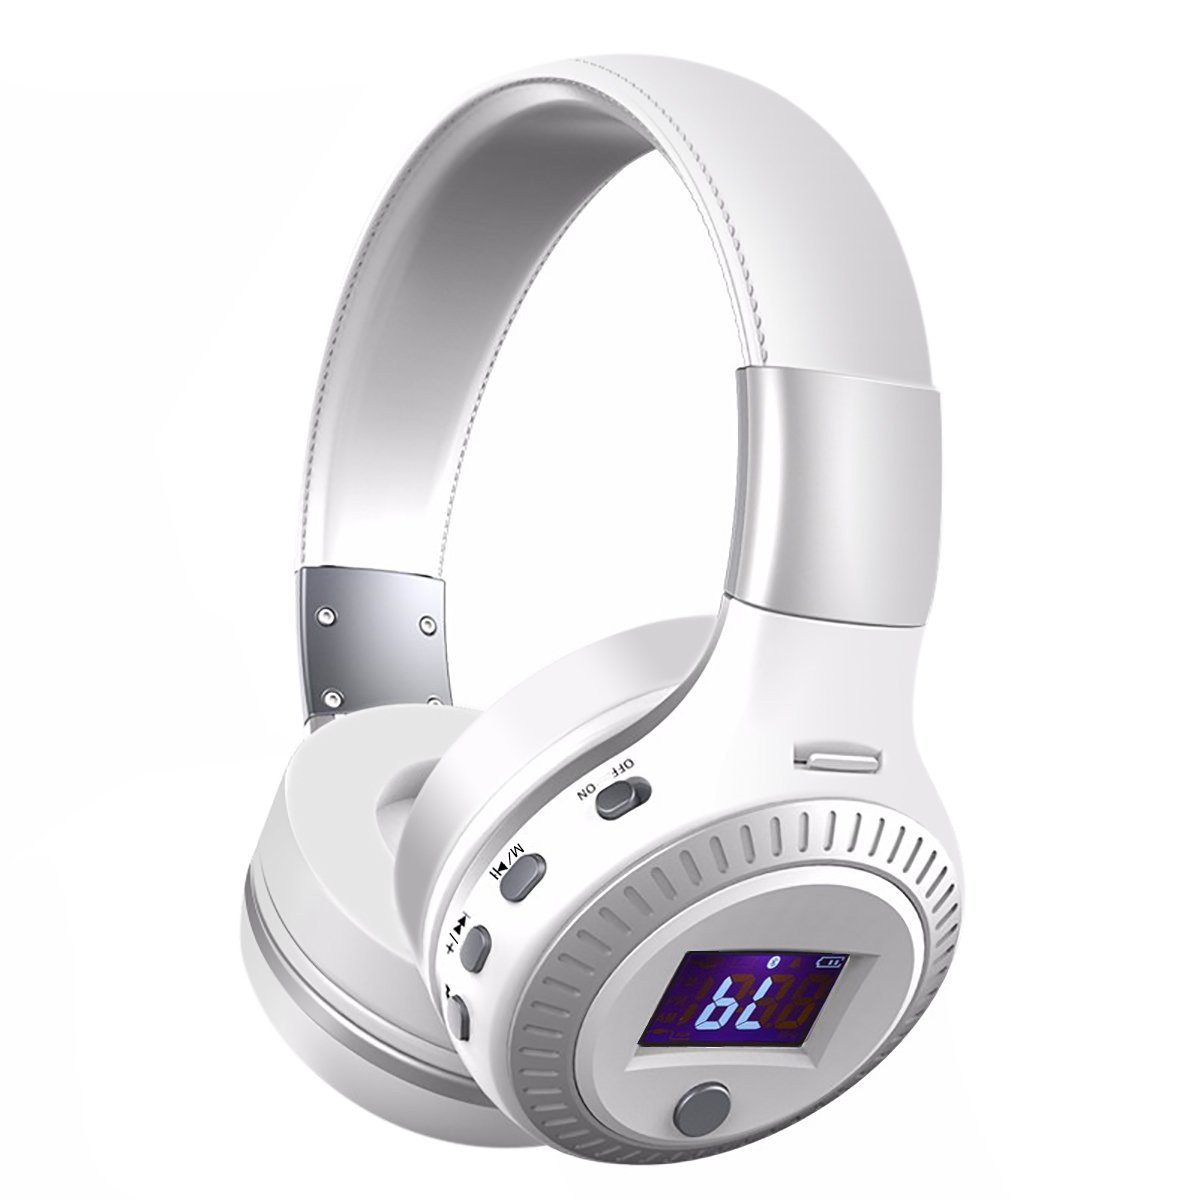 Over-ear Headphones, YESSHOW Wireless Bluetooth Earphones with Mic HiFi Stereo Foldable Adjustable Headset Noise Cancelling for Laptop Computer Tablet PC & Other iPhone Android Smartphones [White]